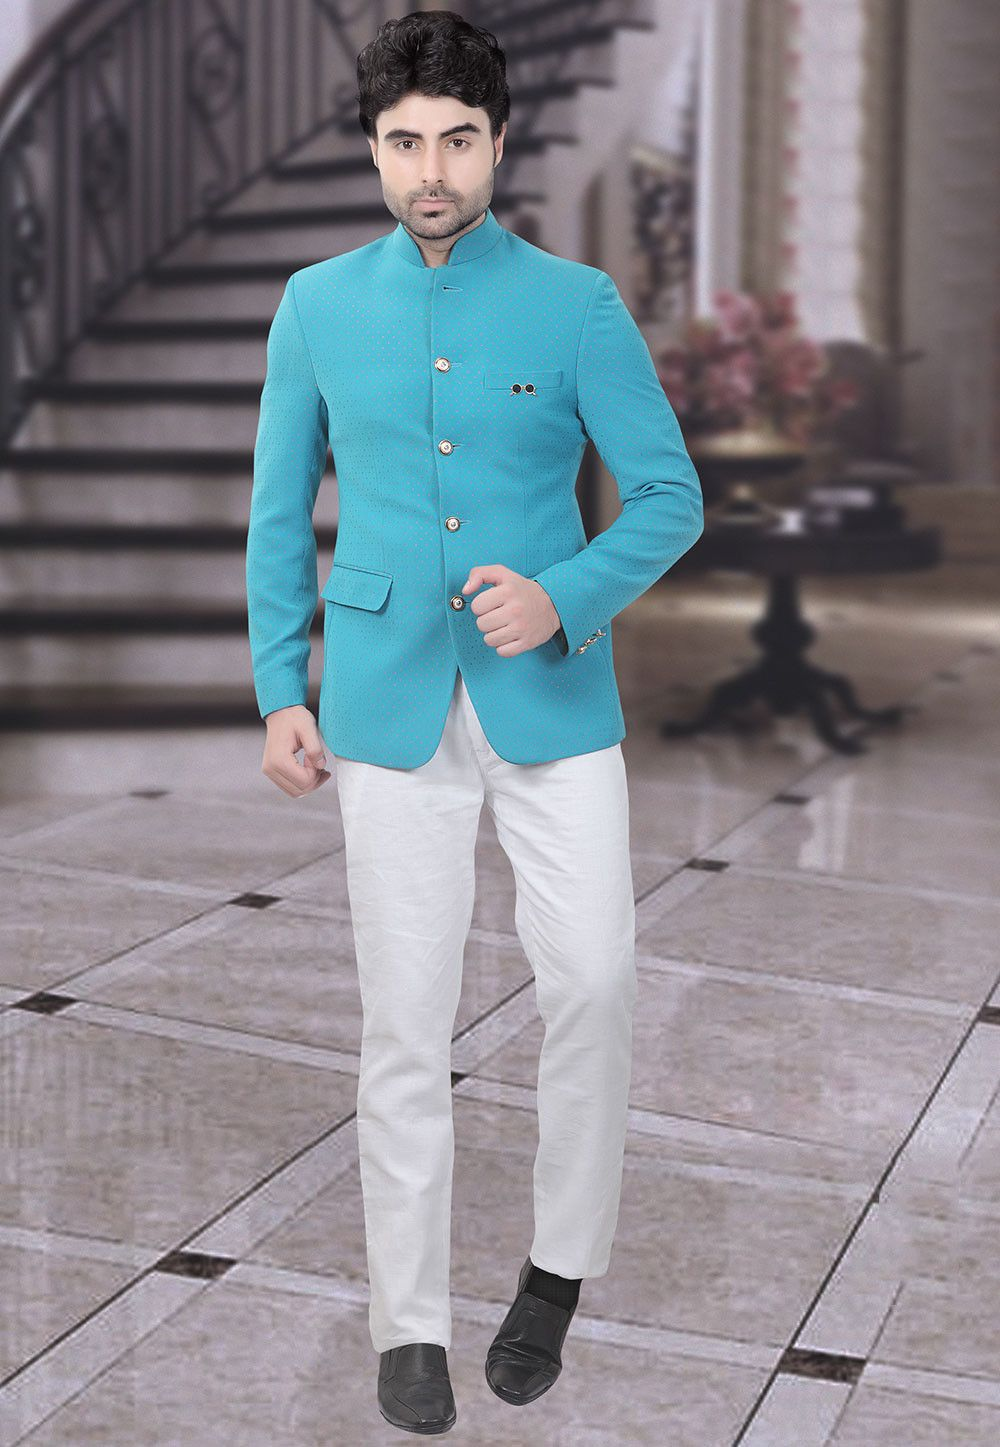 334c3a8e7 Woven Terry Rayon Jacquard Jodhpuri Suit in Light Blue in 2019